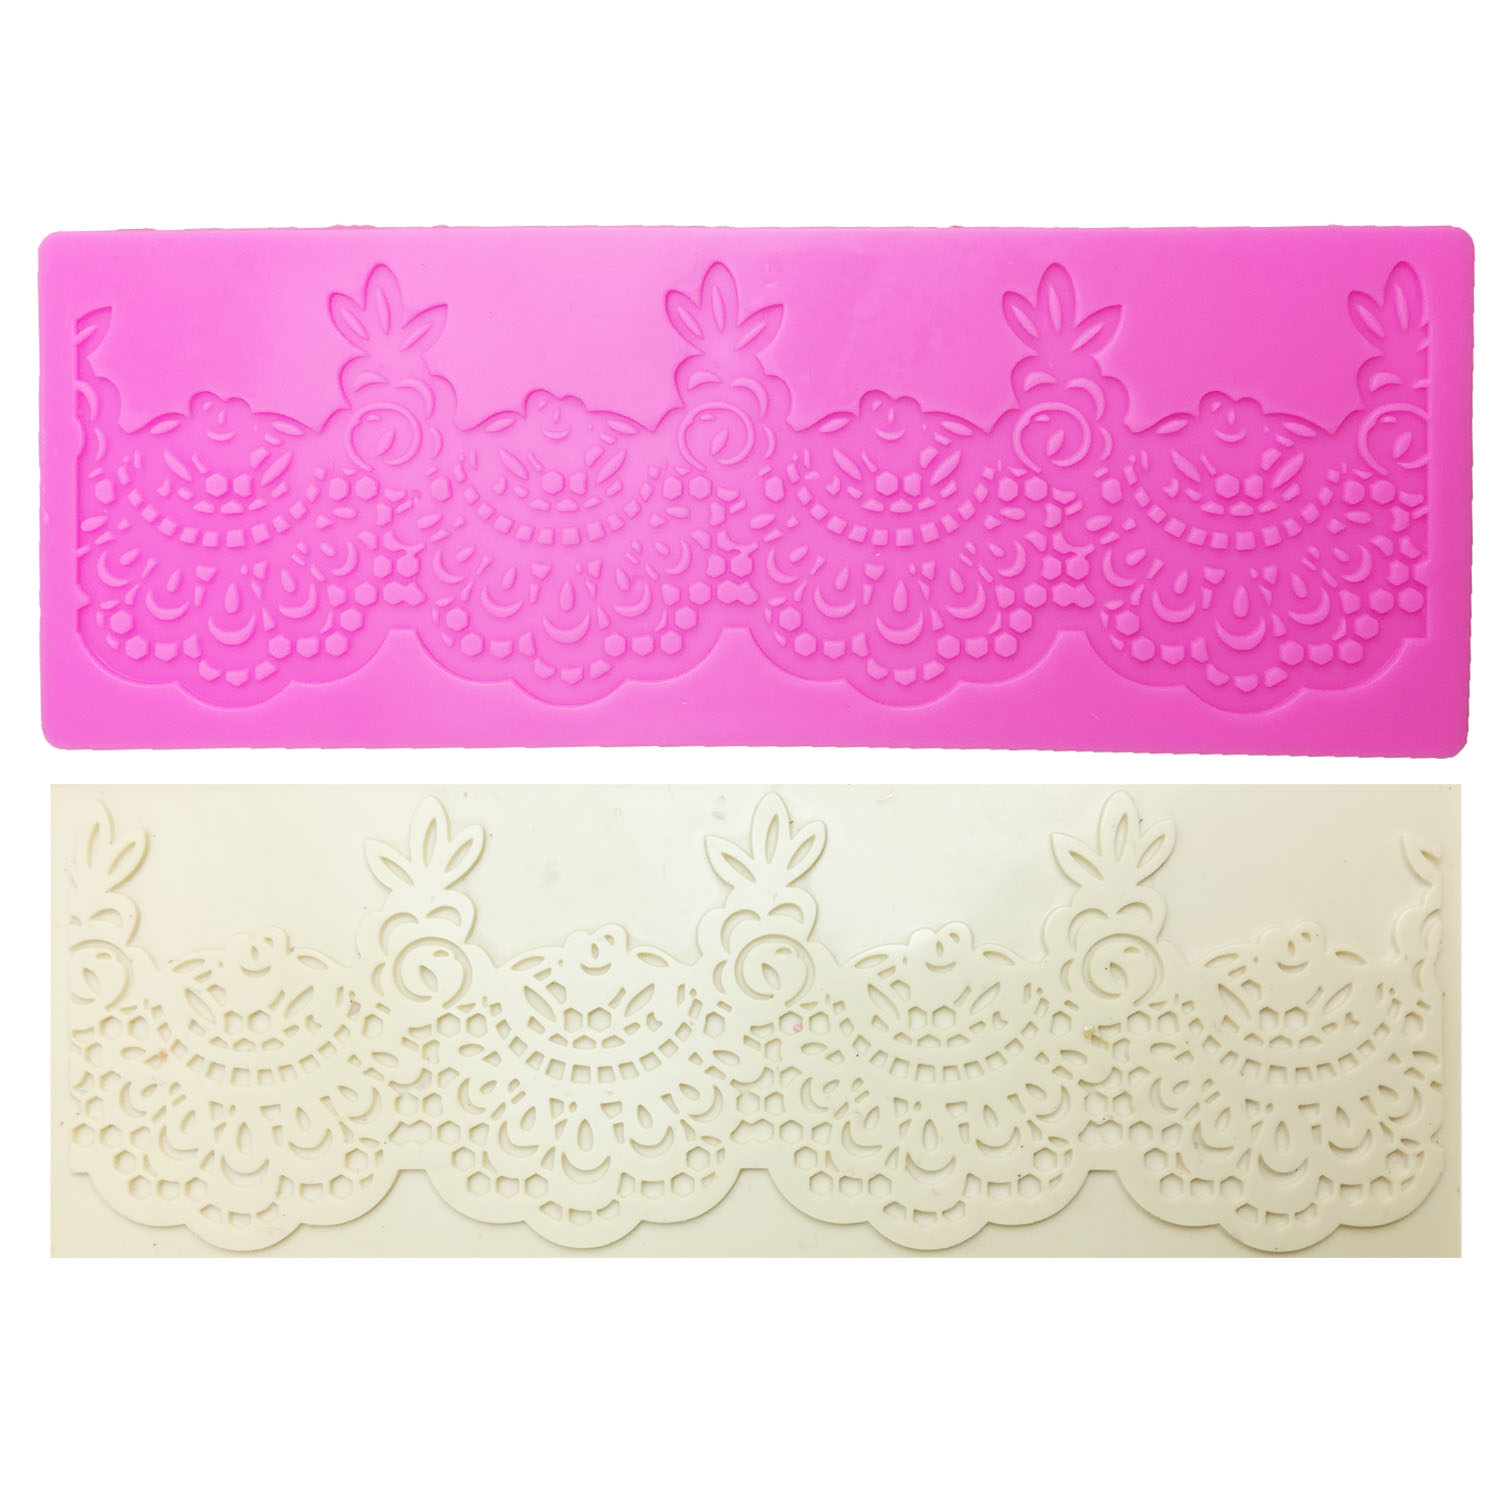 M0358 Flower Lace Mat Diy Silicone Mold For Cake